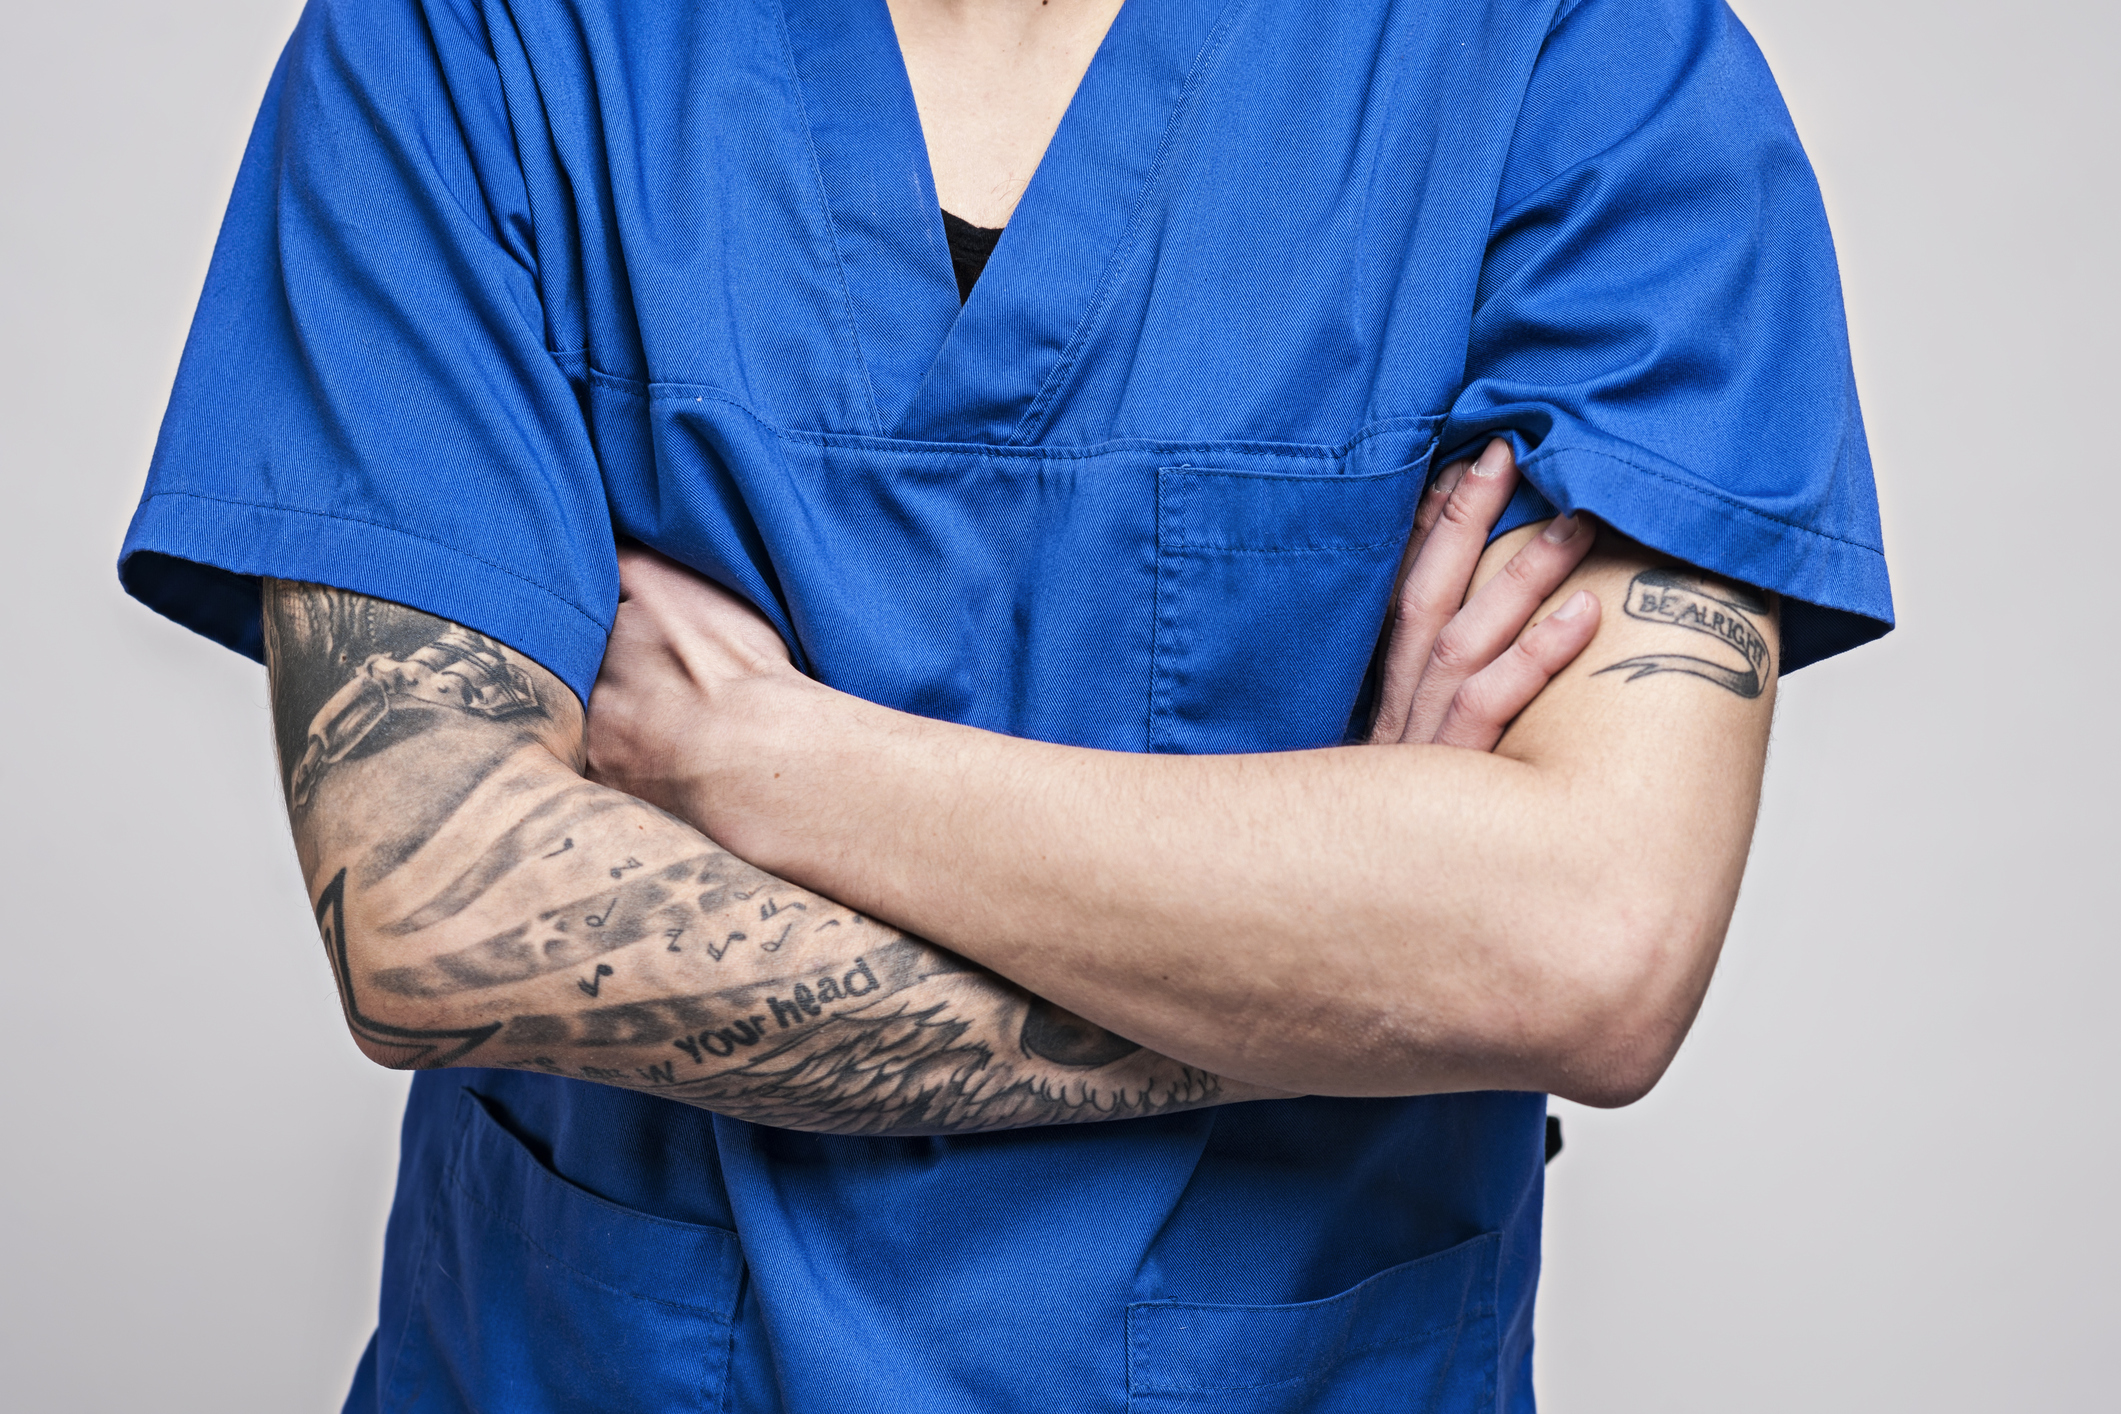 Is It Unprofessional For Doctors To Have Tattoos Or Facial Piercings Cmaj News